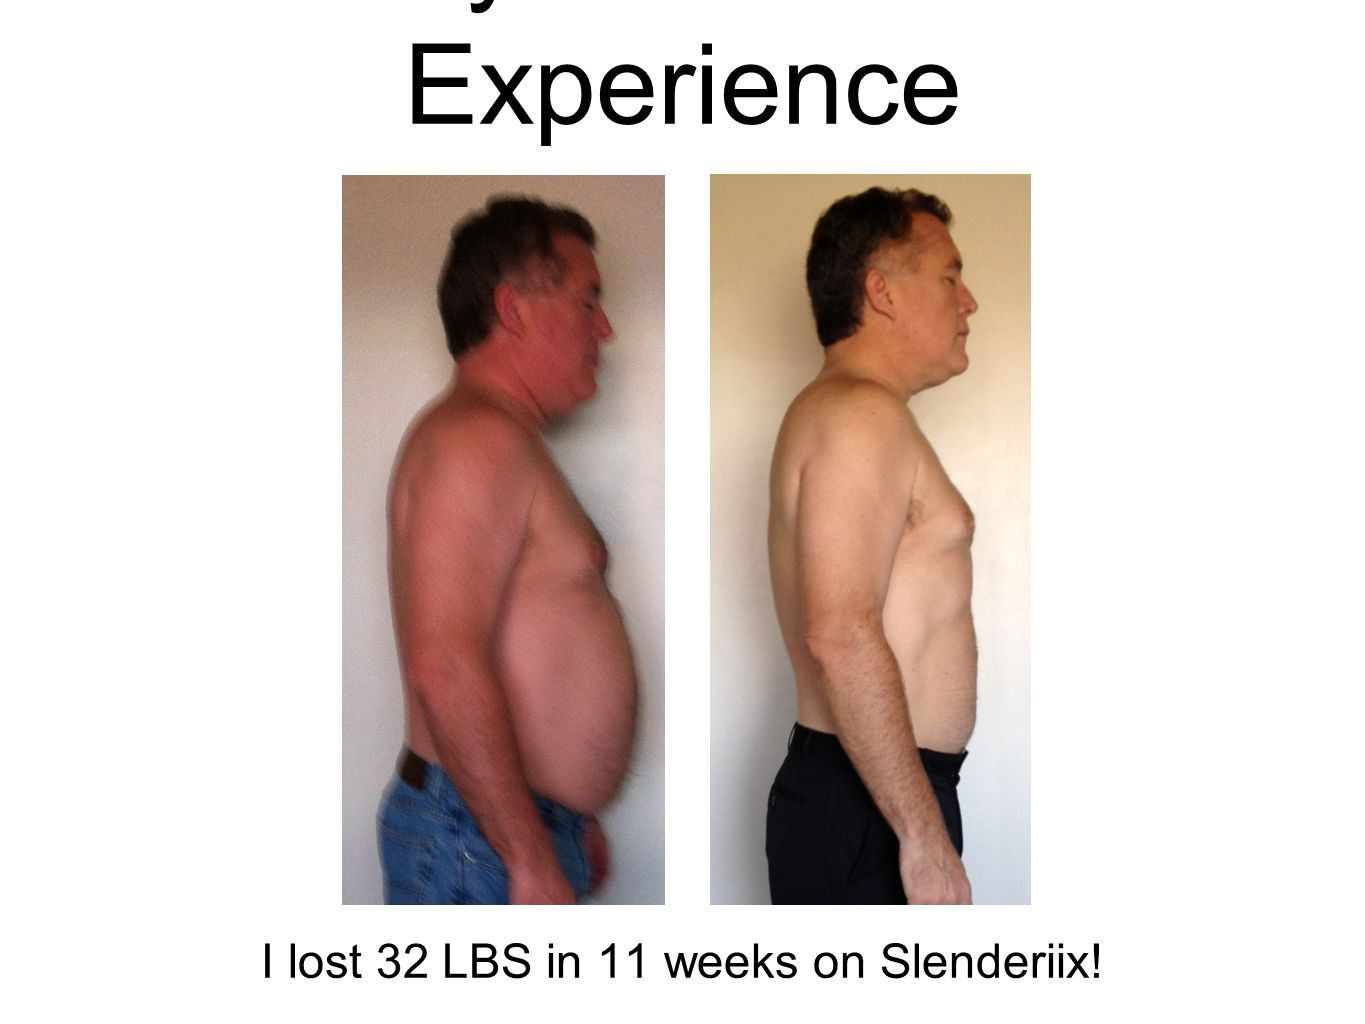 My Personal Experience I lost 32 LBS in 11 weeks on Slenderiix!